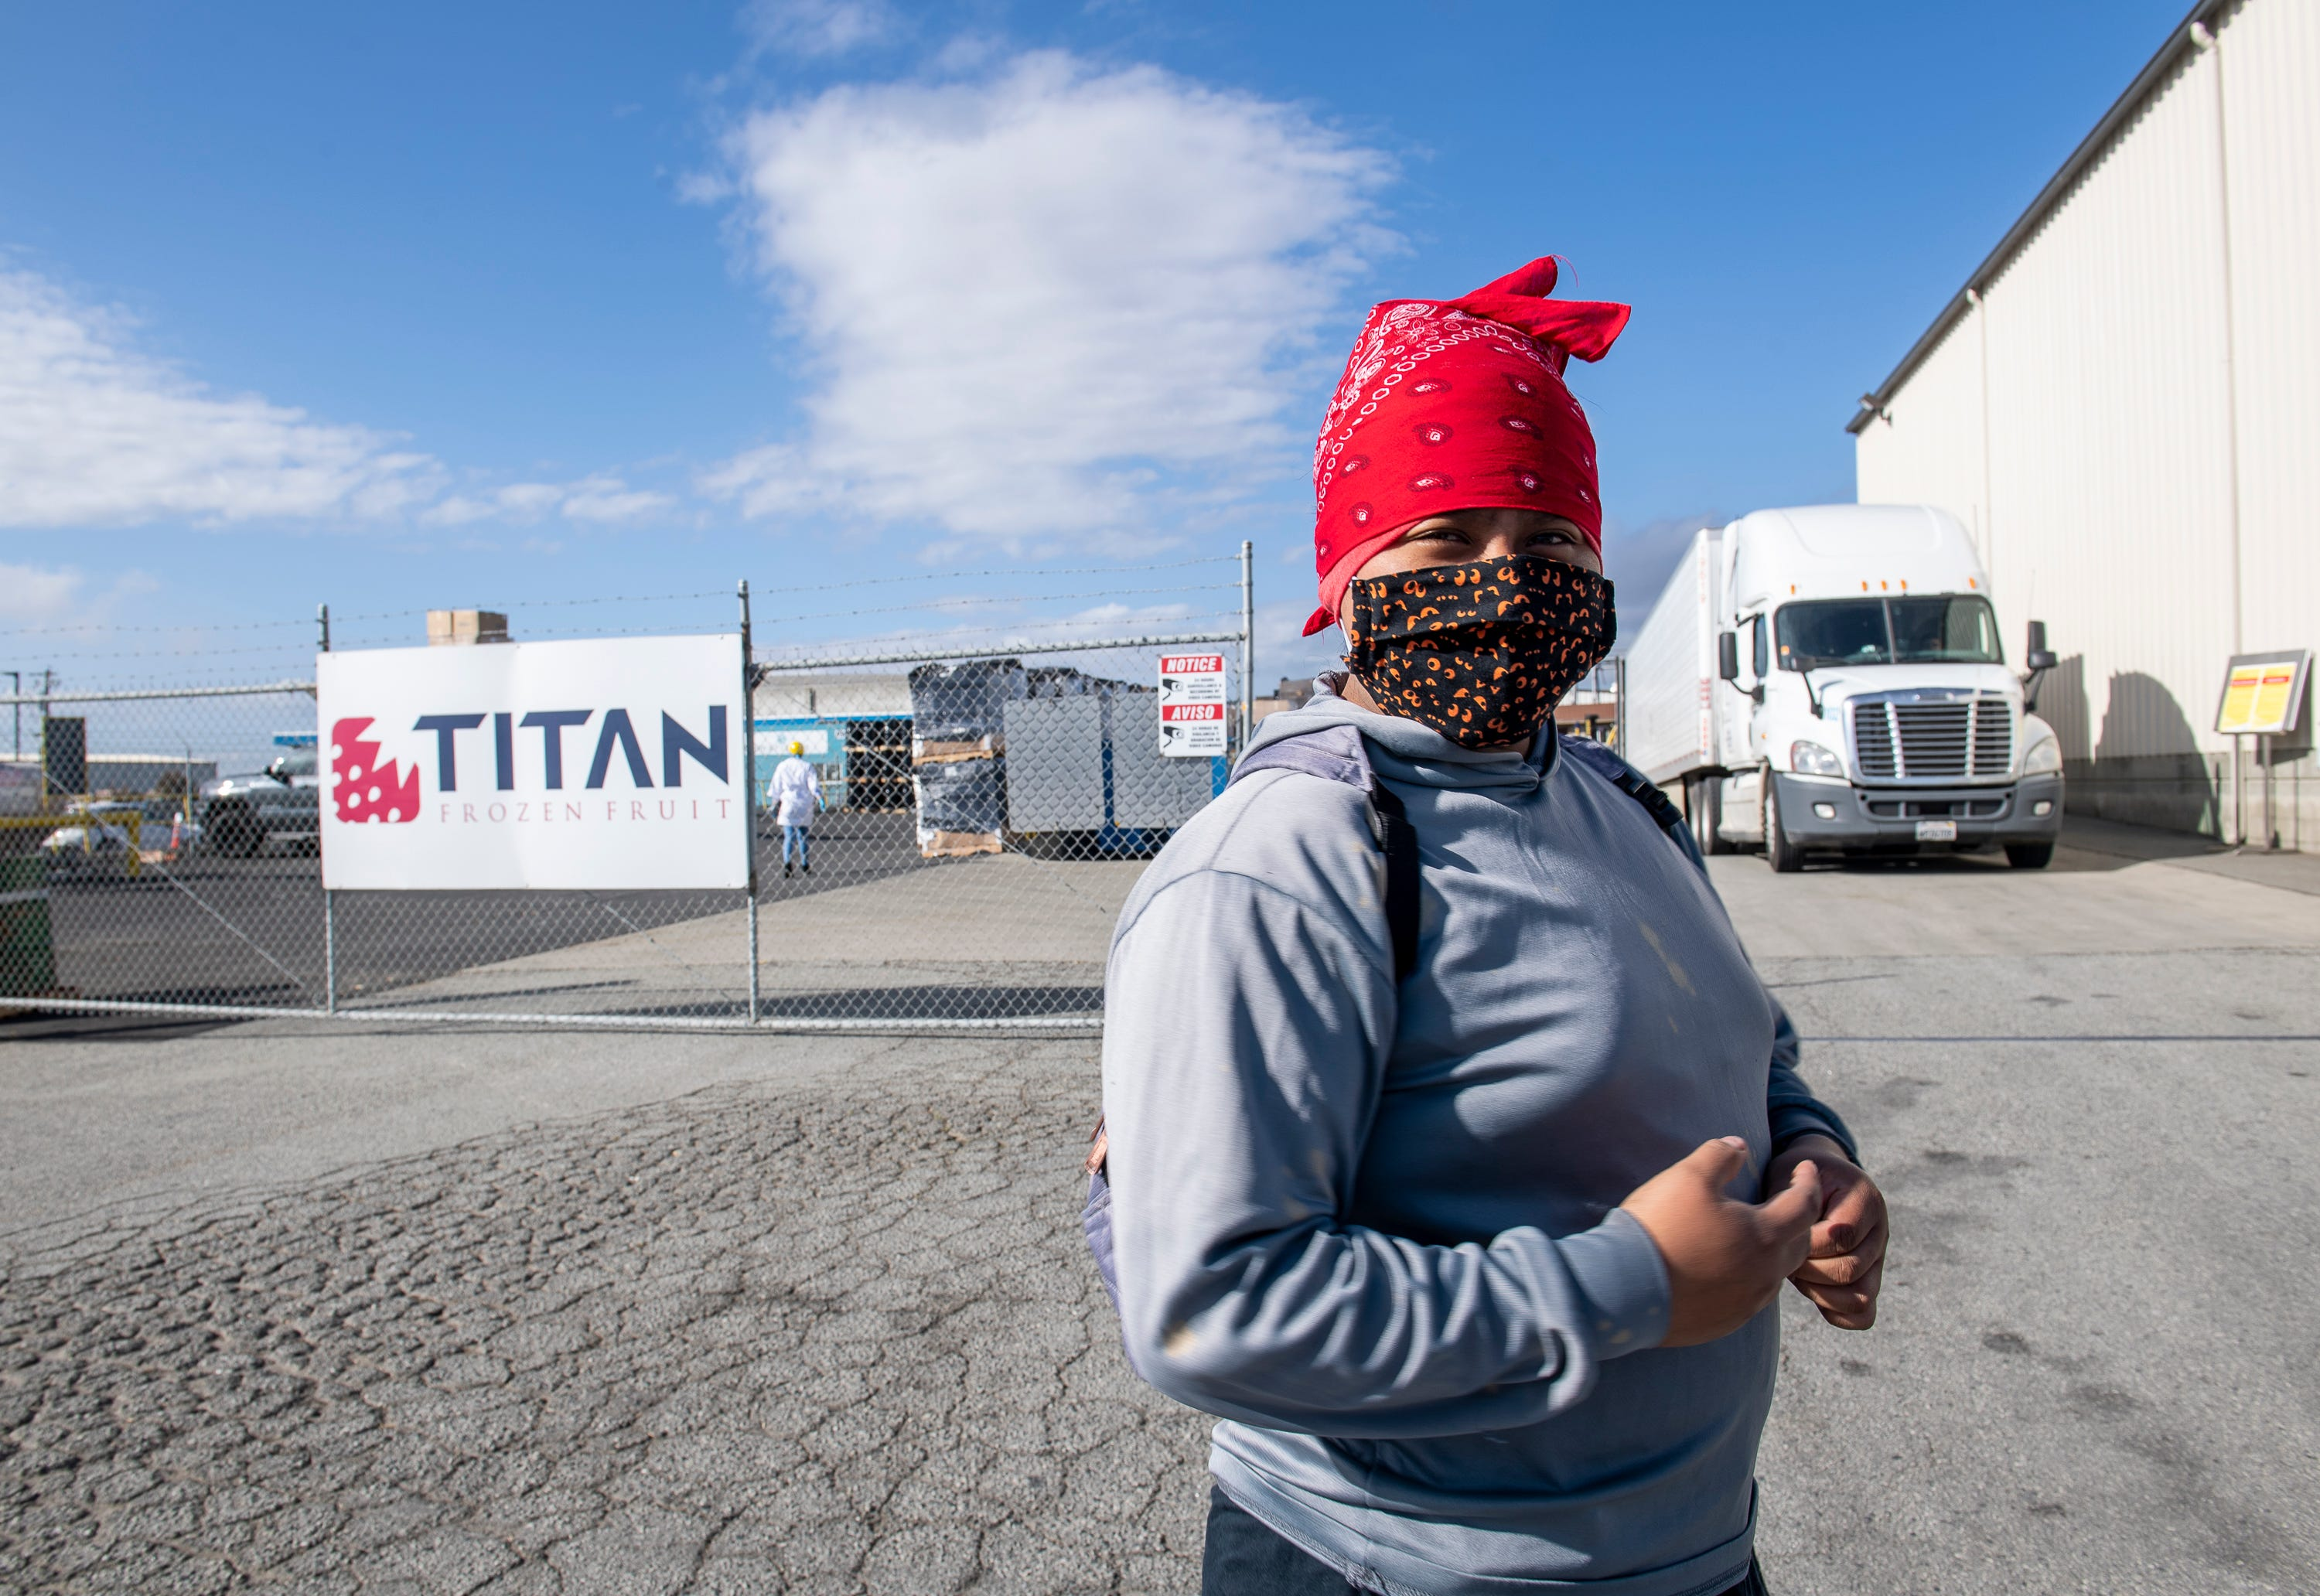 Resi Salvador, 19, waits in line to enter her new job at the Titan frozen fruit company. It is a summer job that she got to help her parents with the rent of their two-bedroom apartment in north Salinas, Calif.